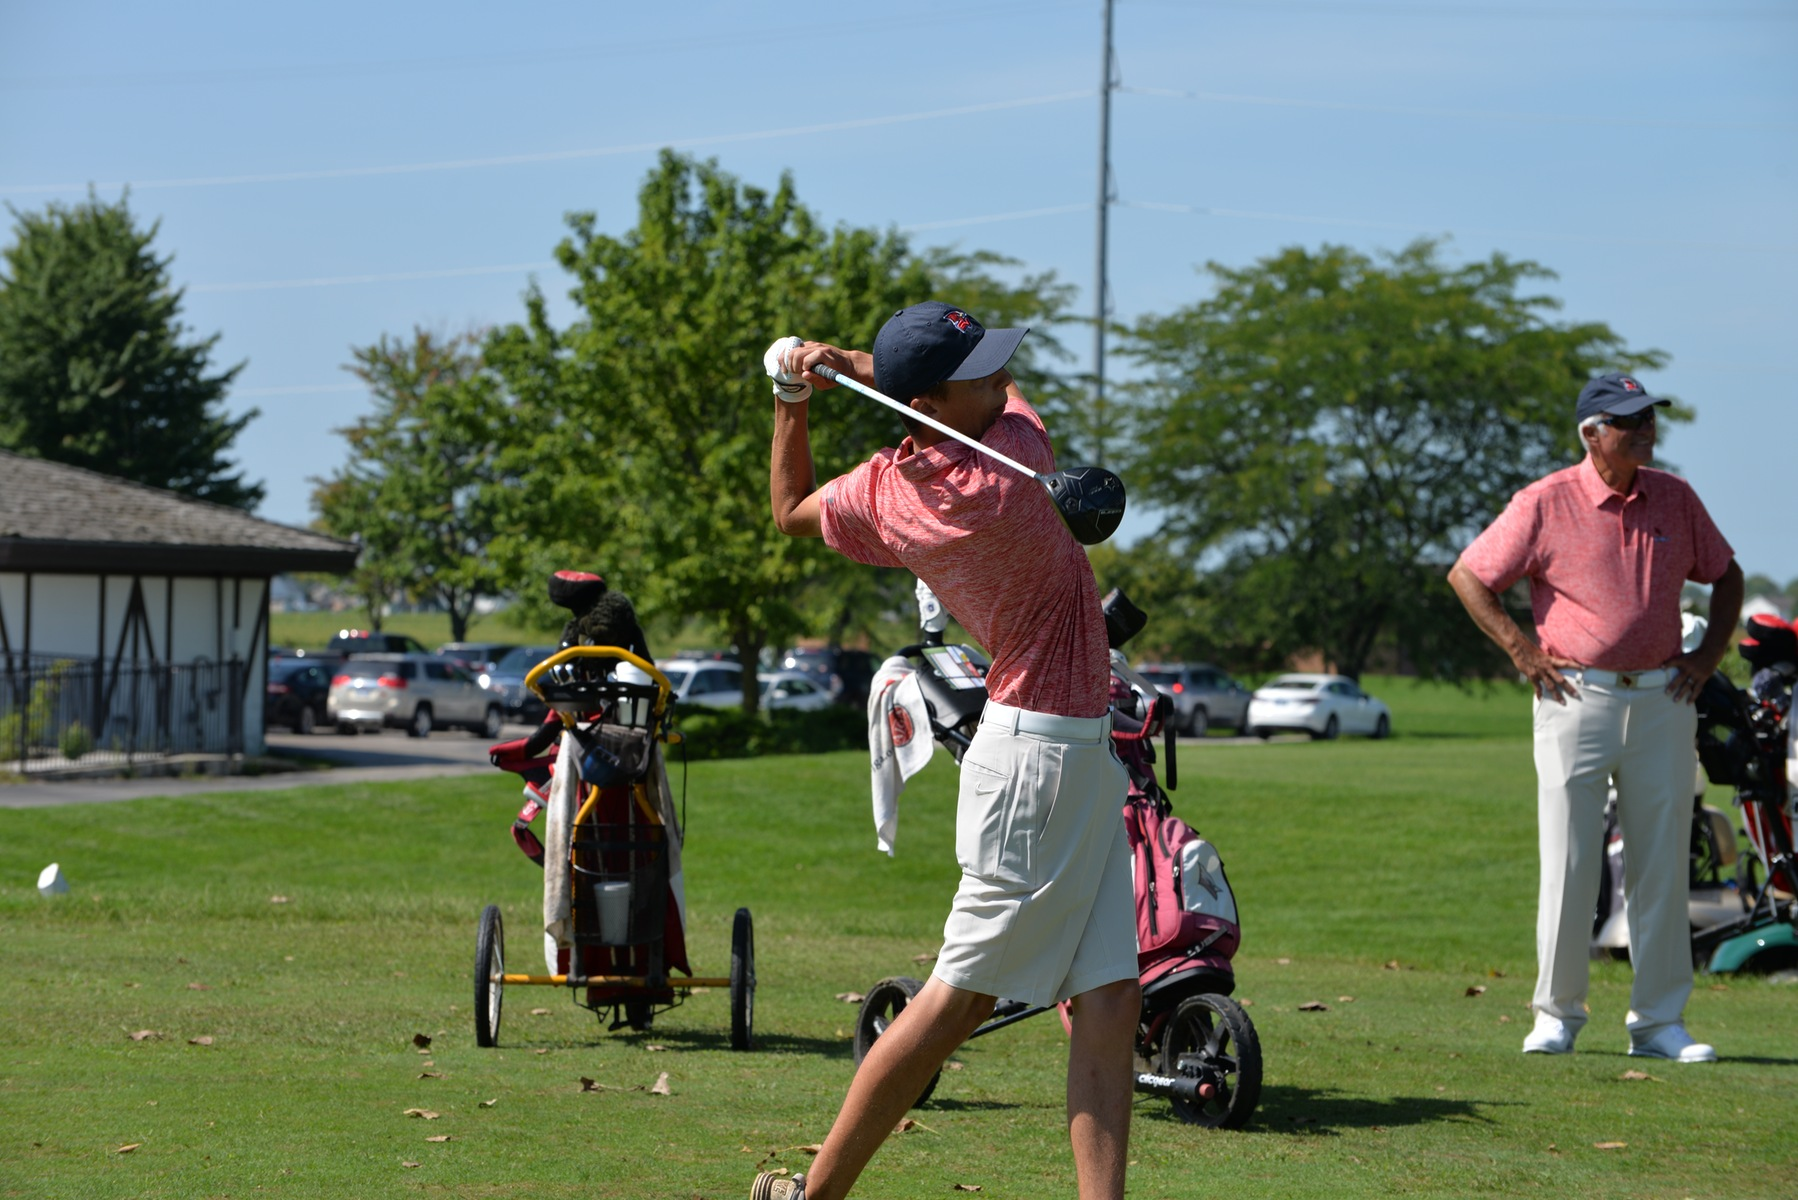 Cardinals finish 7th at Parkside Spring Invitational